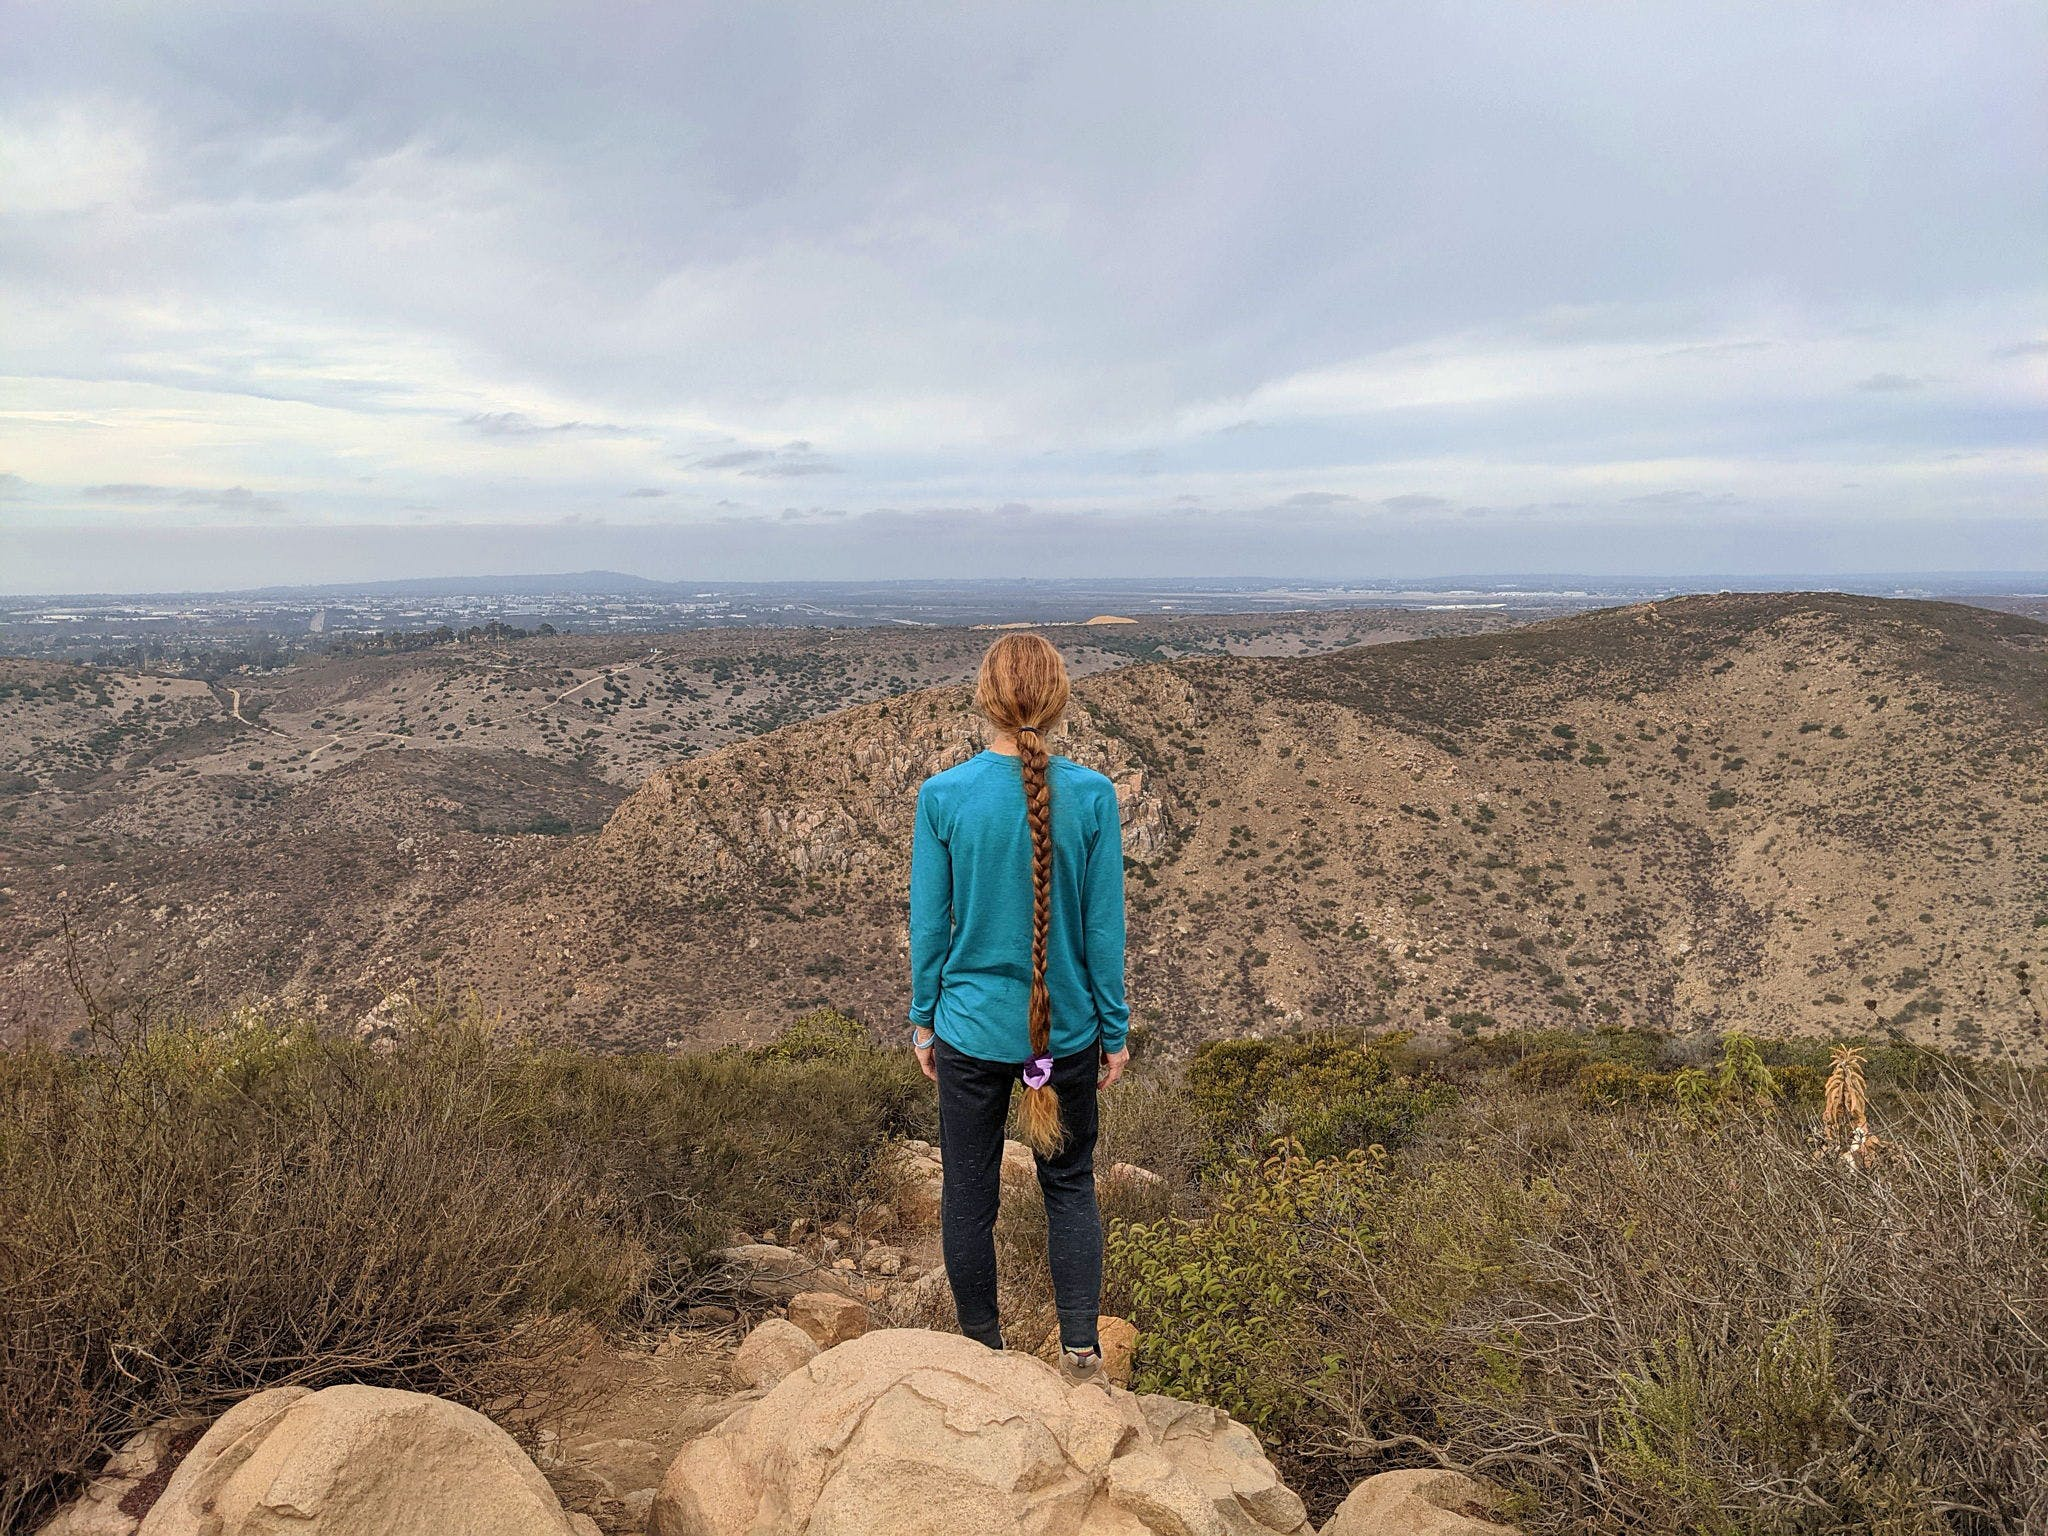 Woman standing at Kwaay Paay peak in San Diego County